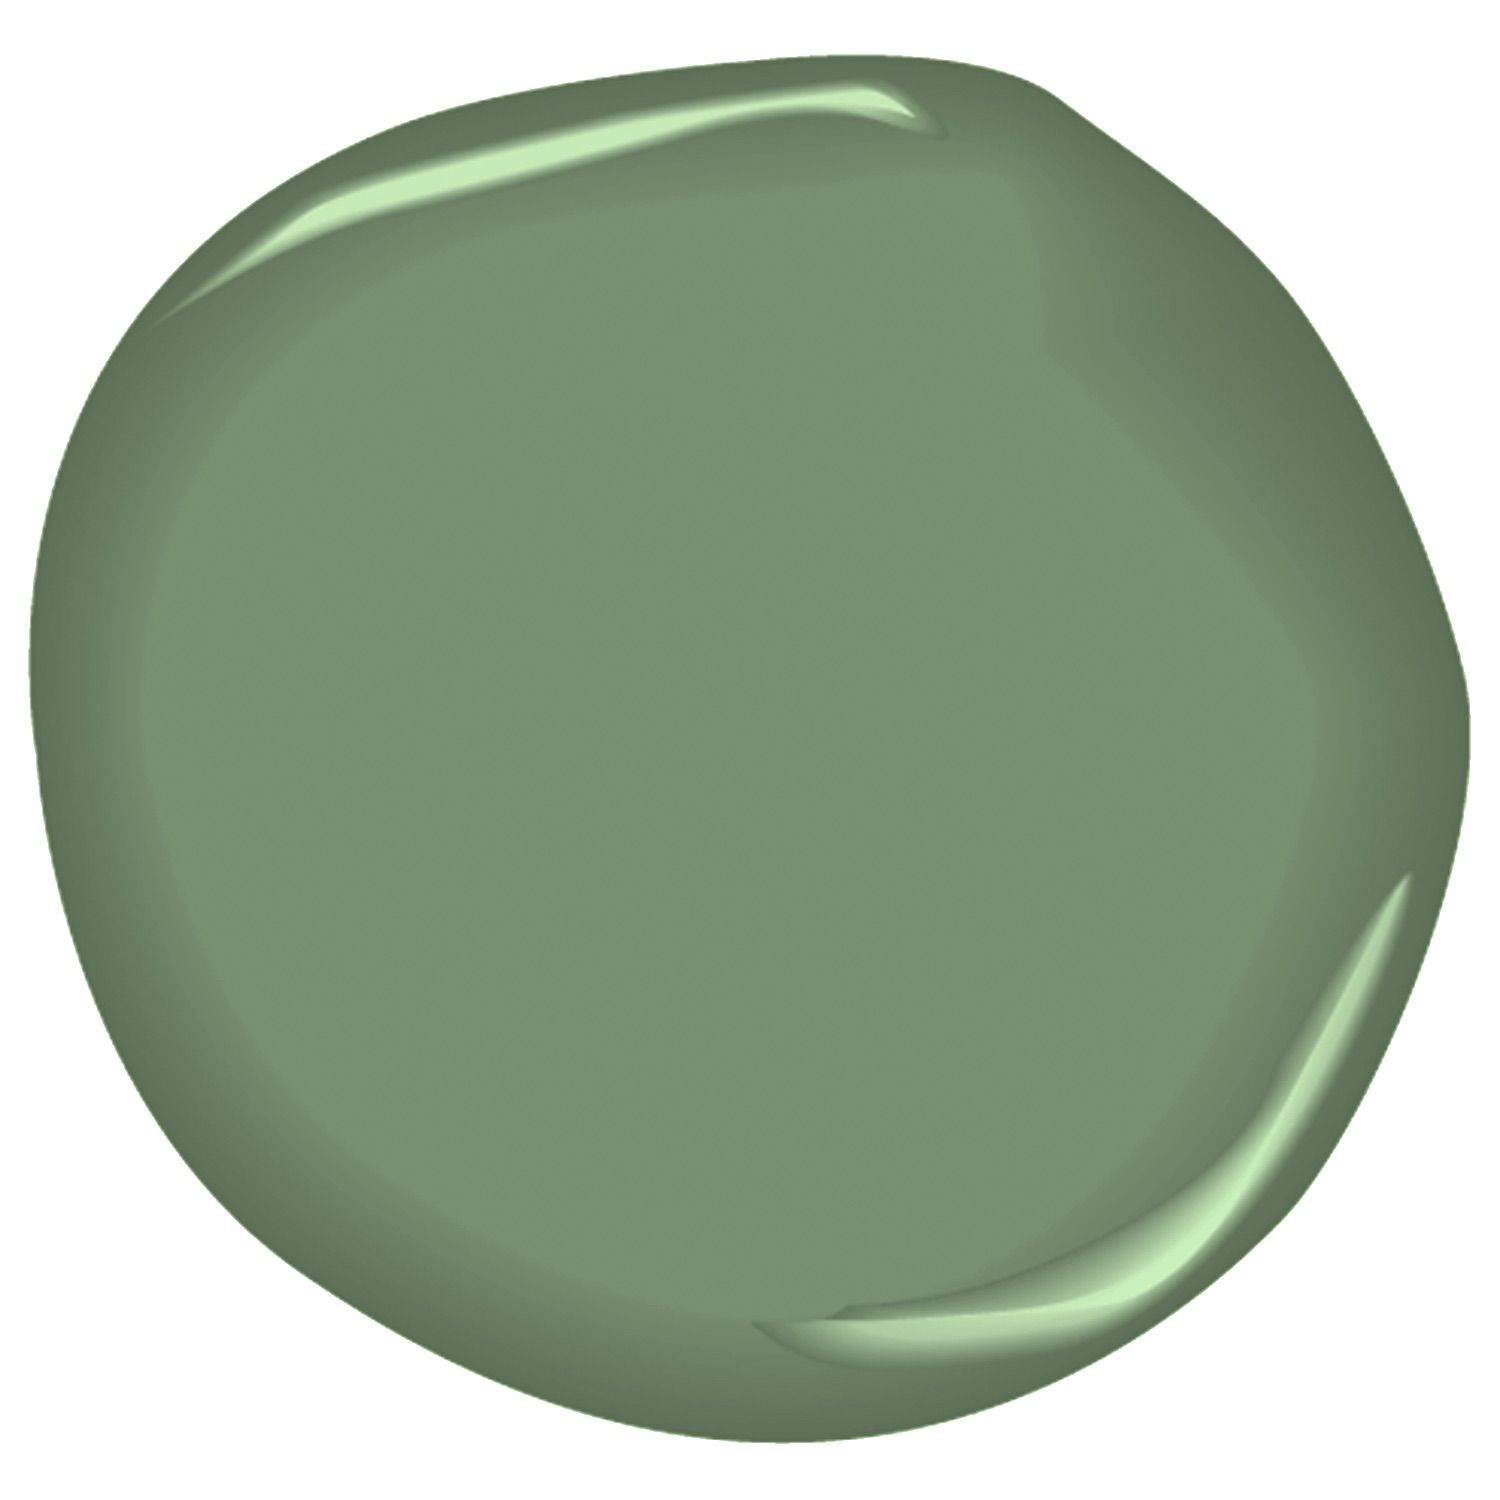 Sage paint colors Warm Best Sage Paint Colors Elle Decor Beautiful Sage Green Paints Rooms With Sage Green Walls Decor